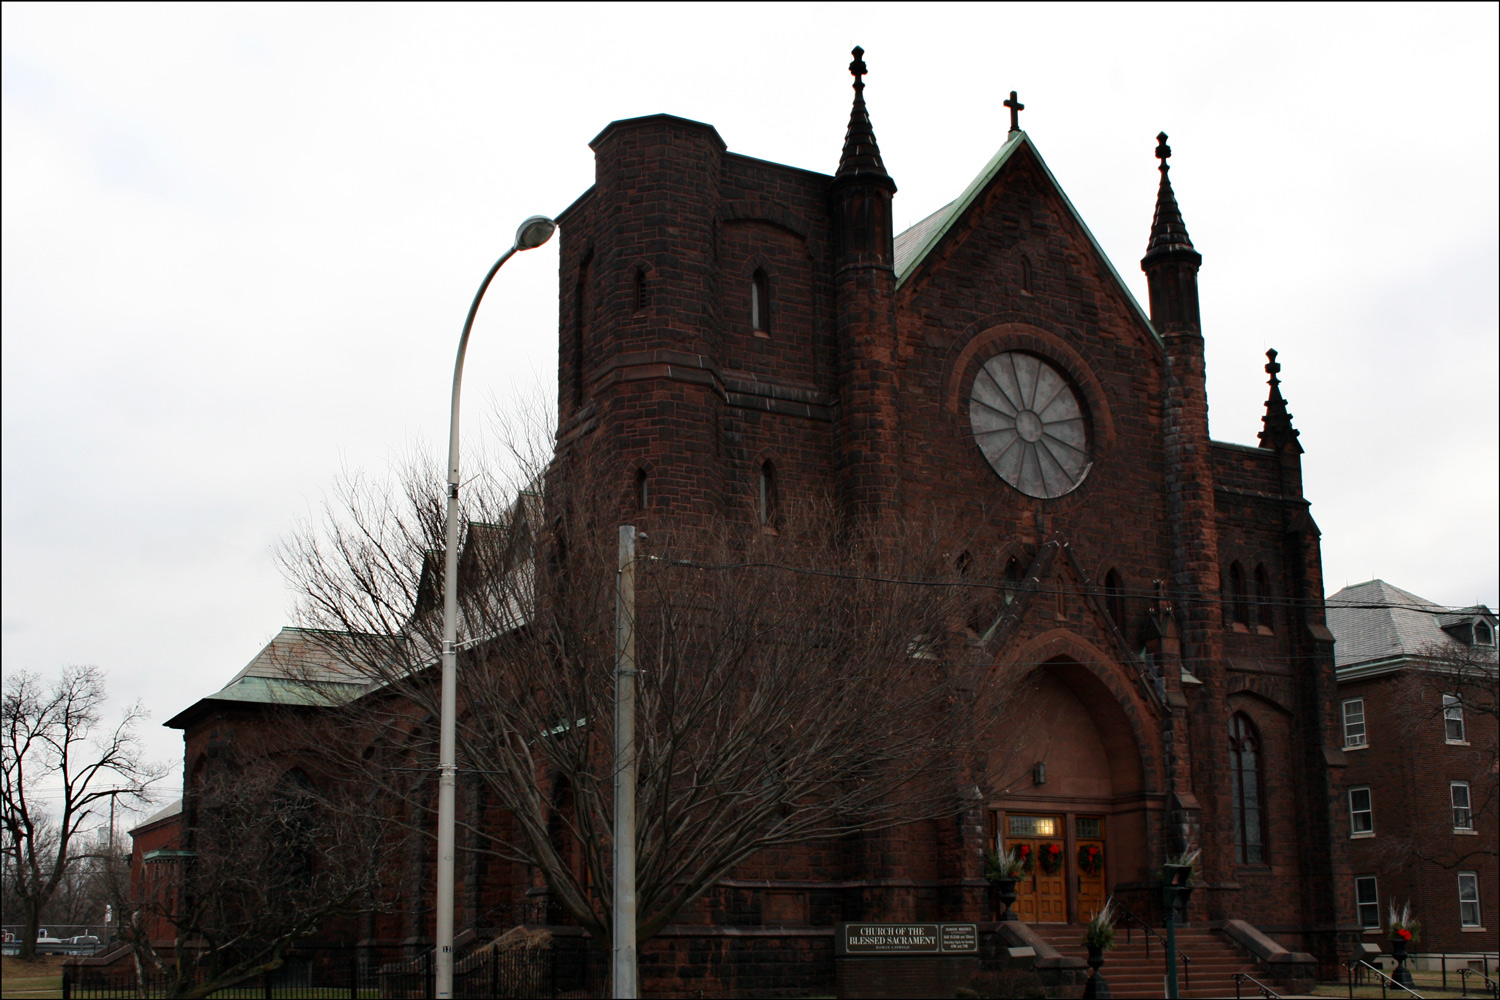 Church of the Blessed Sacrament - Exterior